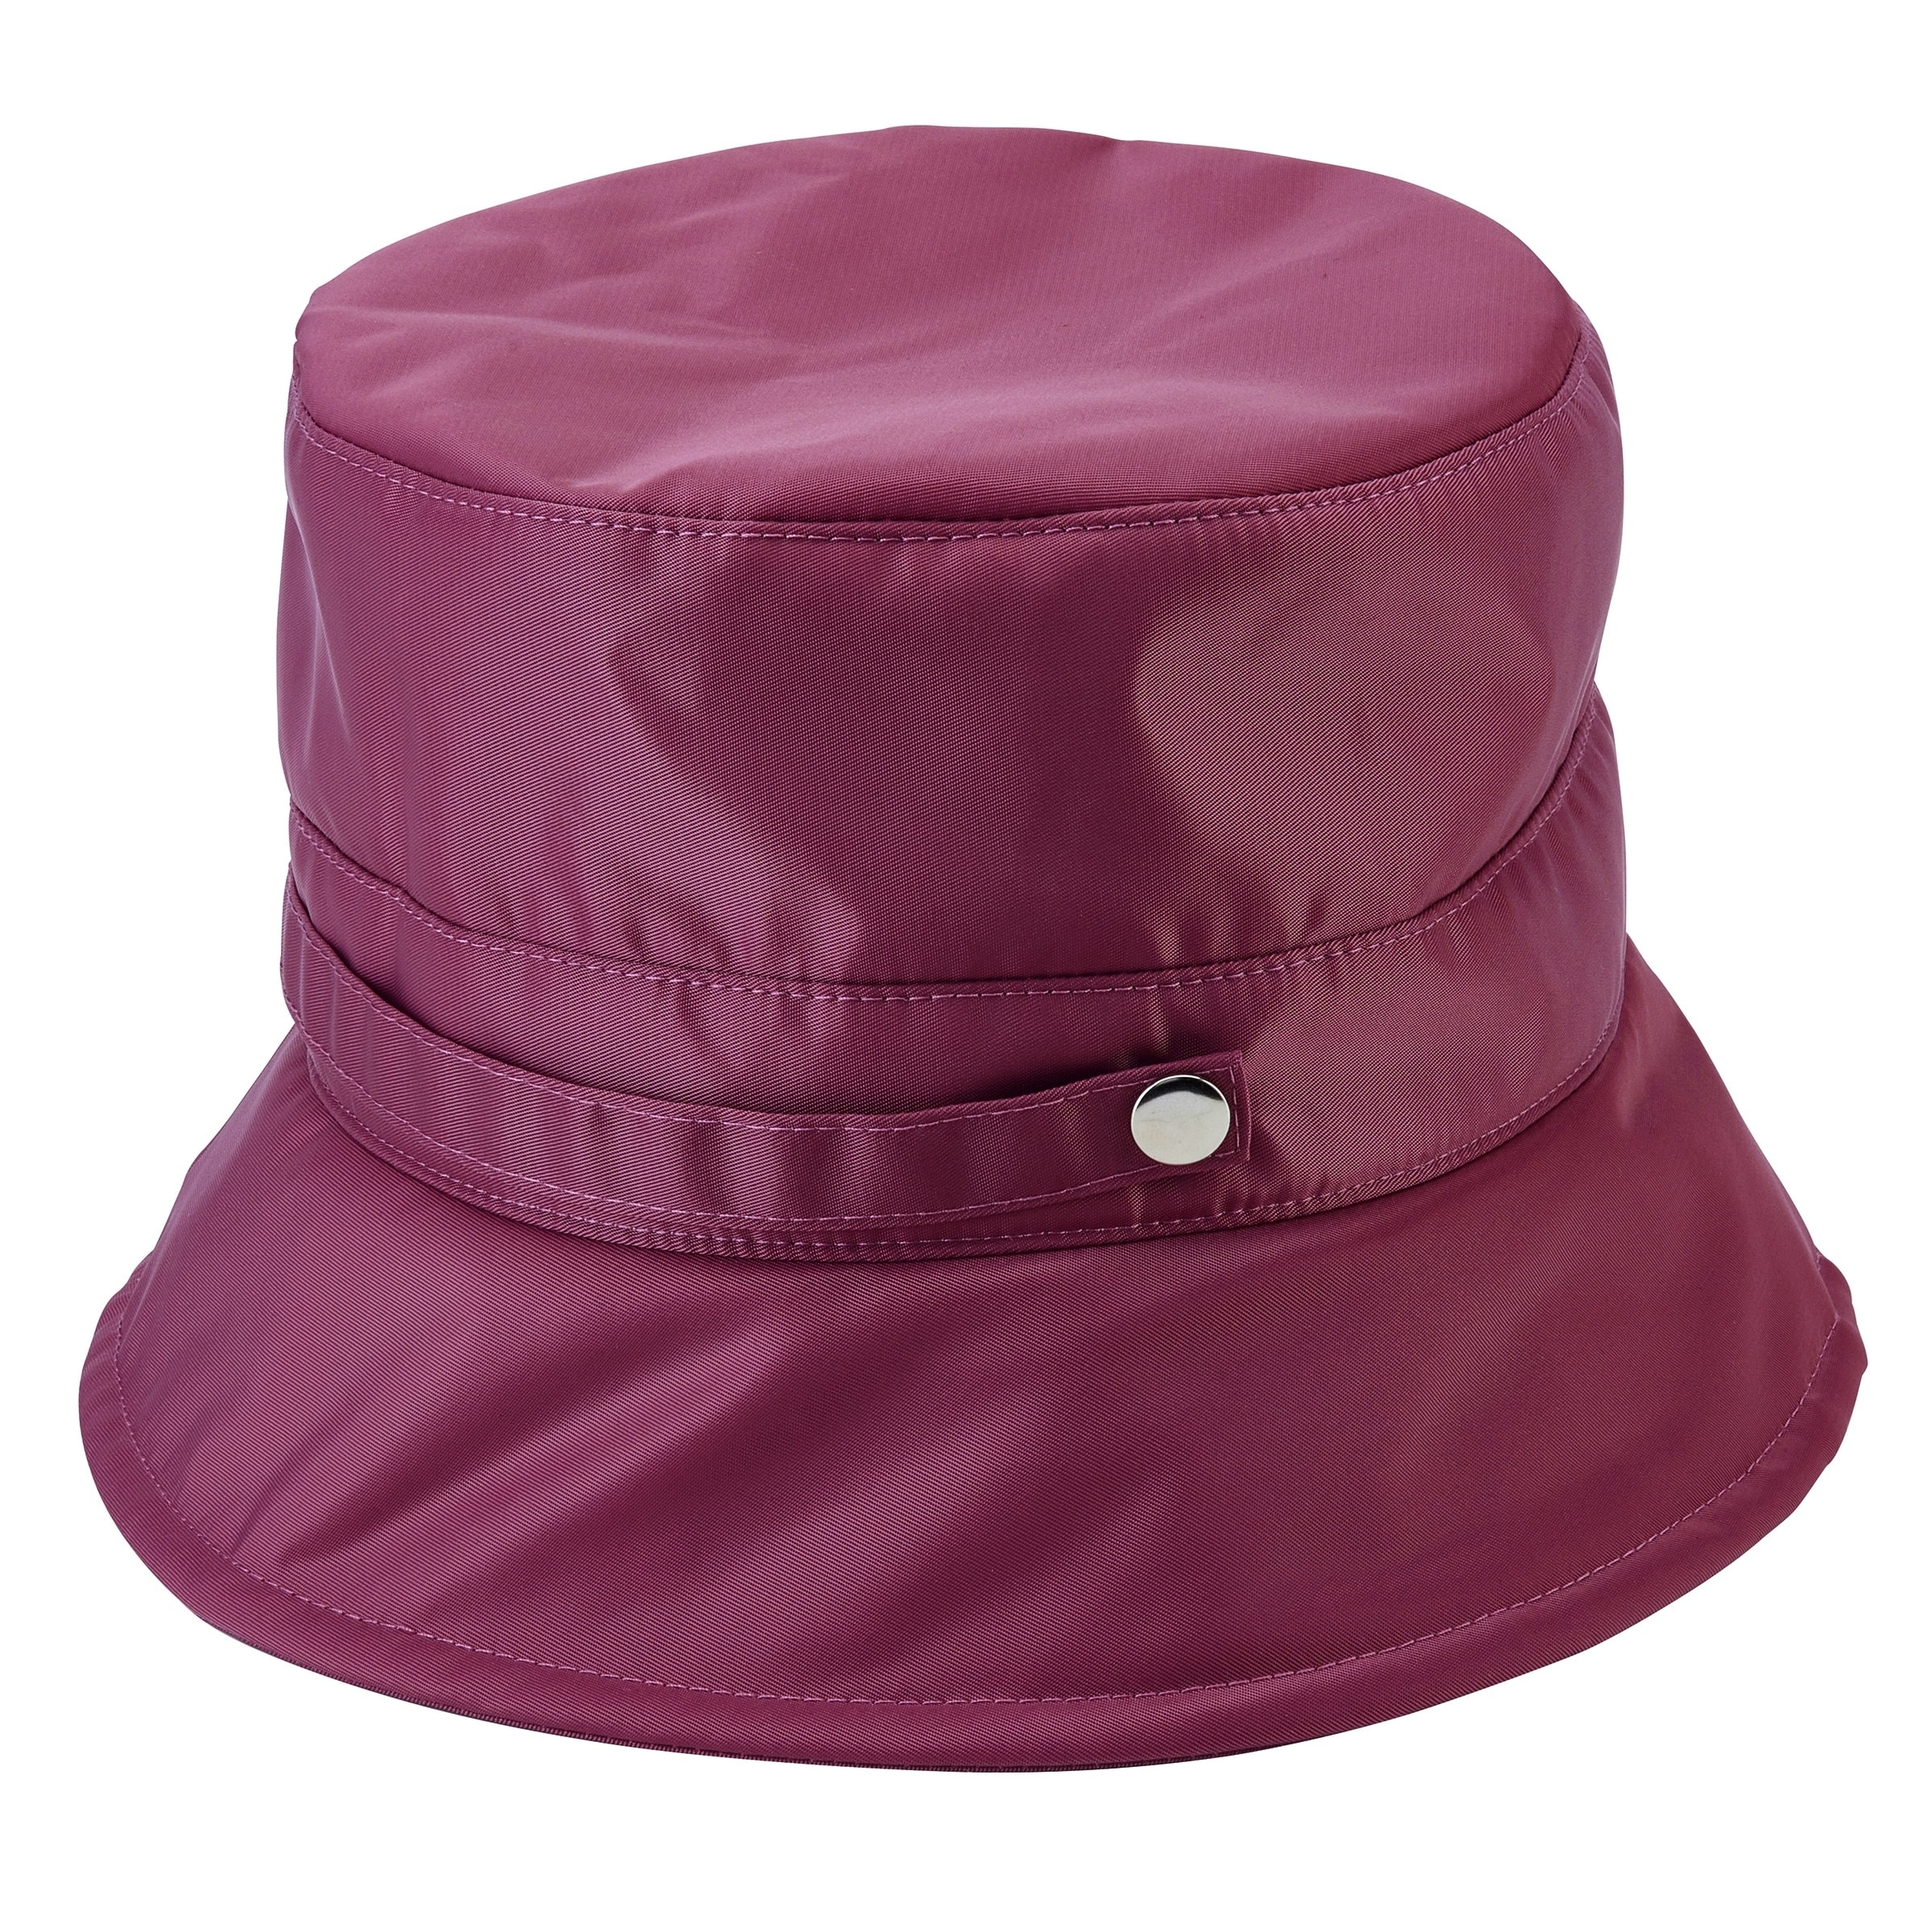 c10a23a09a1 Shop San Diego Hat Company Spring-Summer 2017 Four Buttons Collection Rain  hat -Blush - Free Shipping On Orders Over  45 - Overstock.com - 16963160